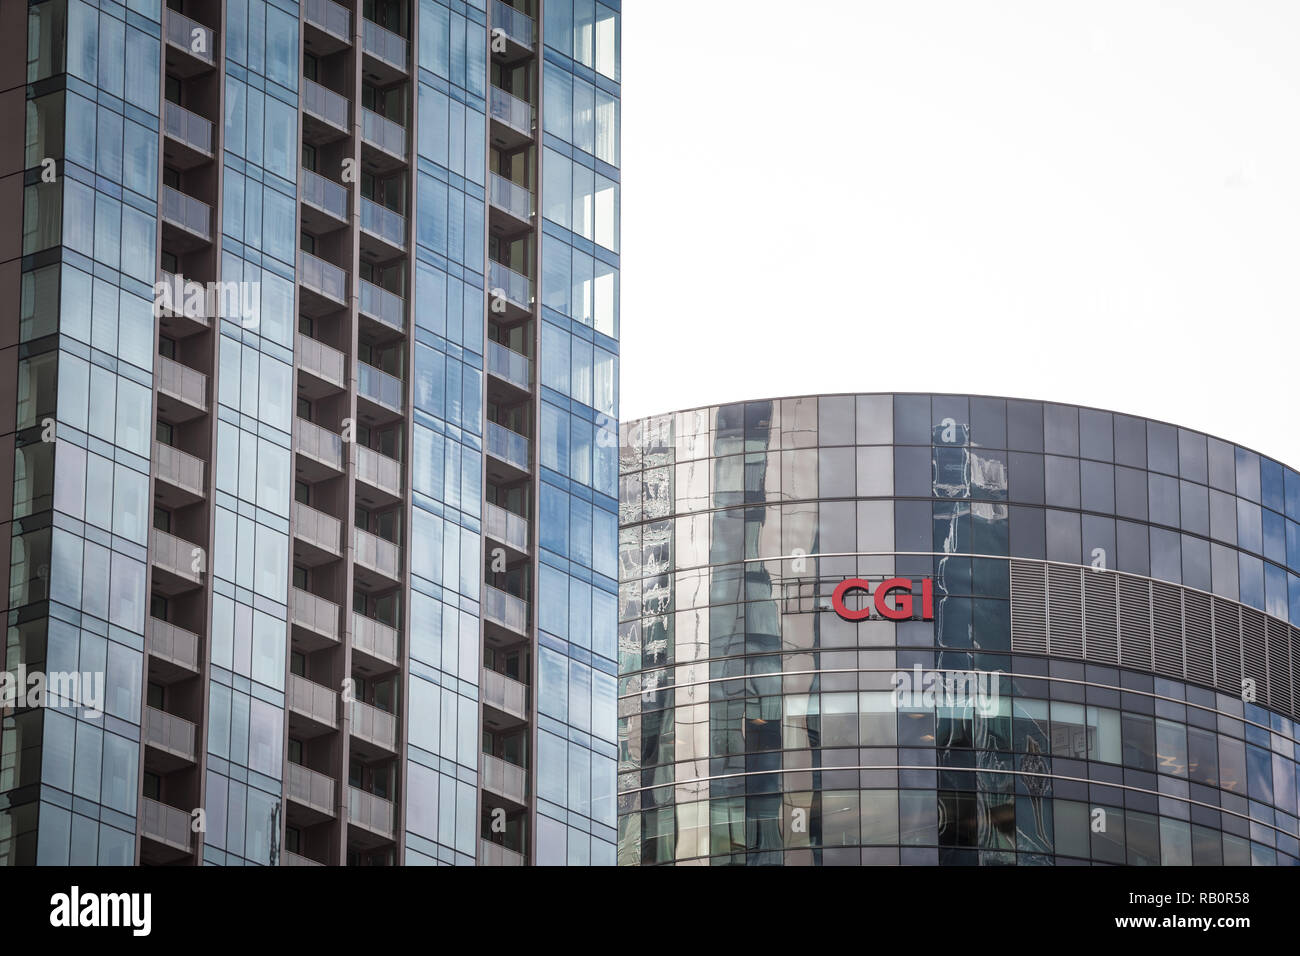 MONTREAL, CANADA - NOVEMBER 4, 2018: CGI Group on their headquarters in Montreal, Quebec. Also known as Conseillers en Gestion Informatique, it is a C - Stock Image